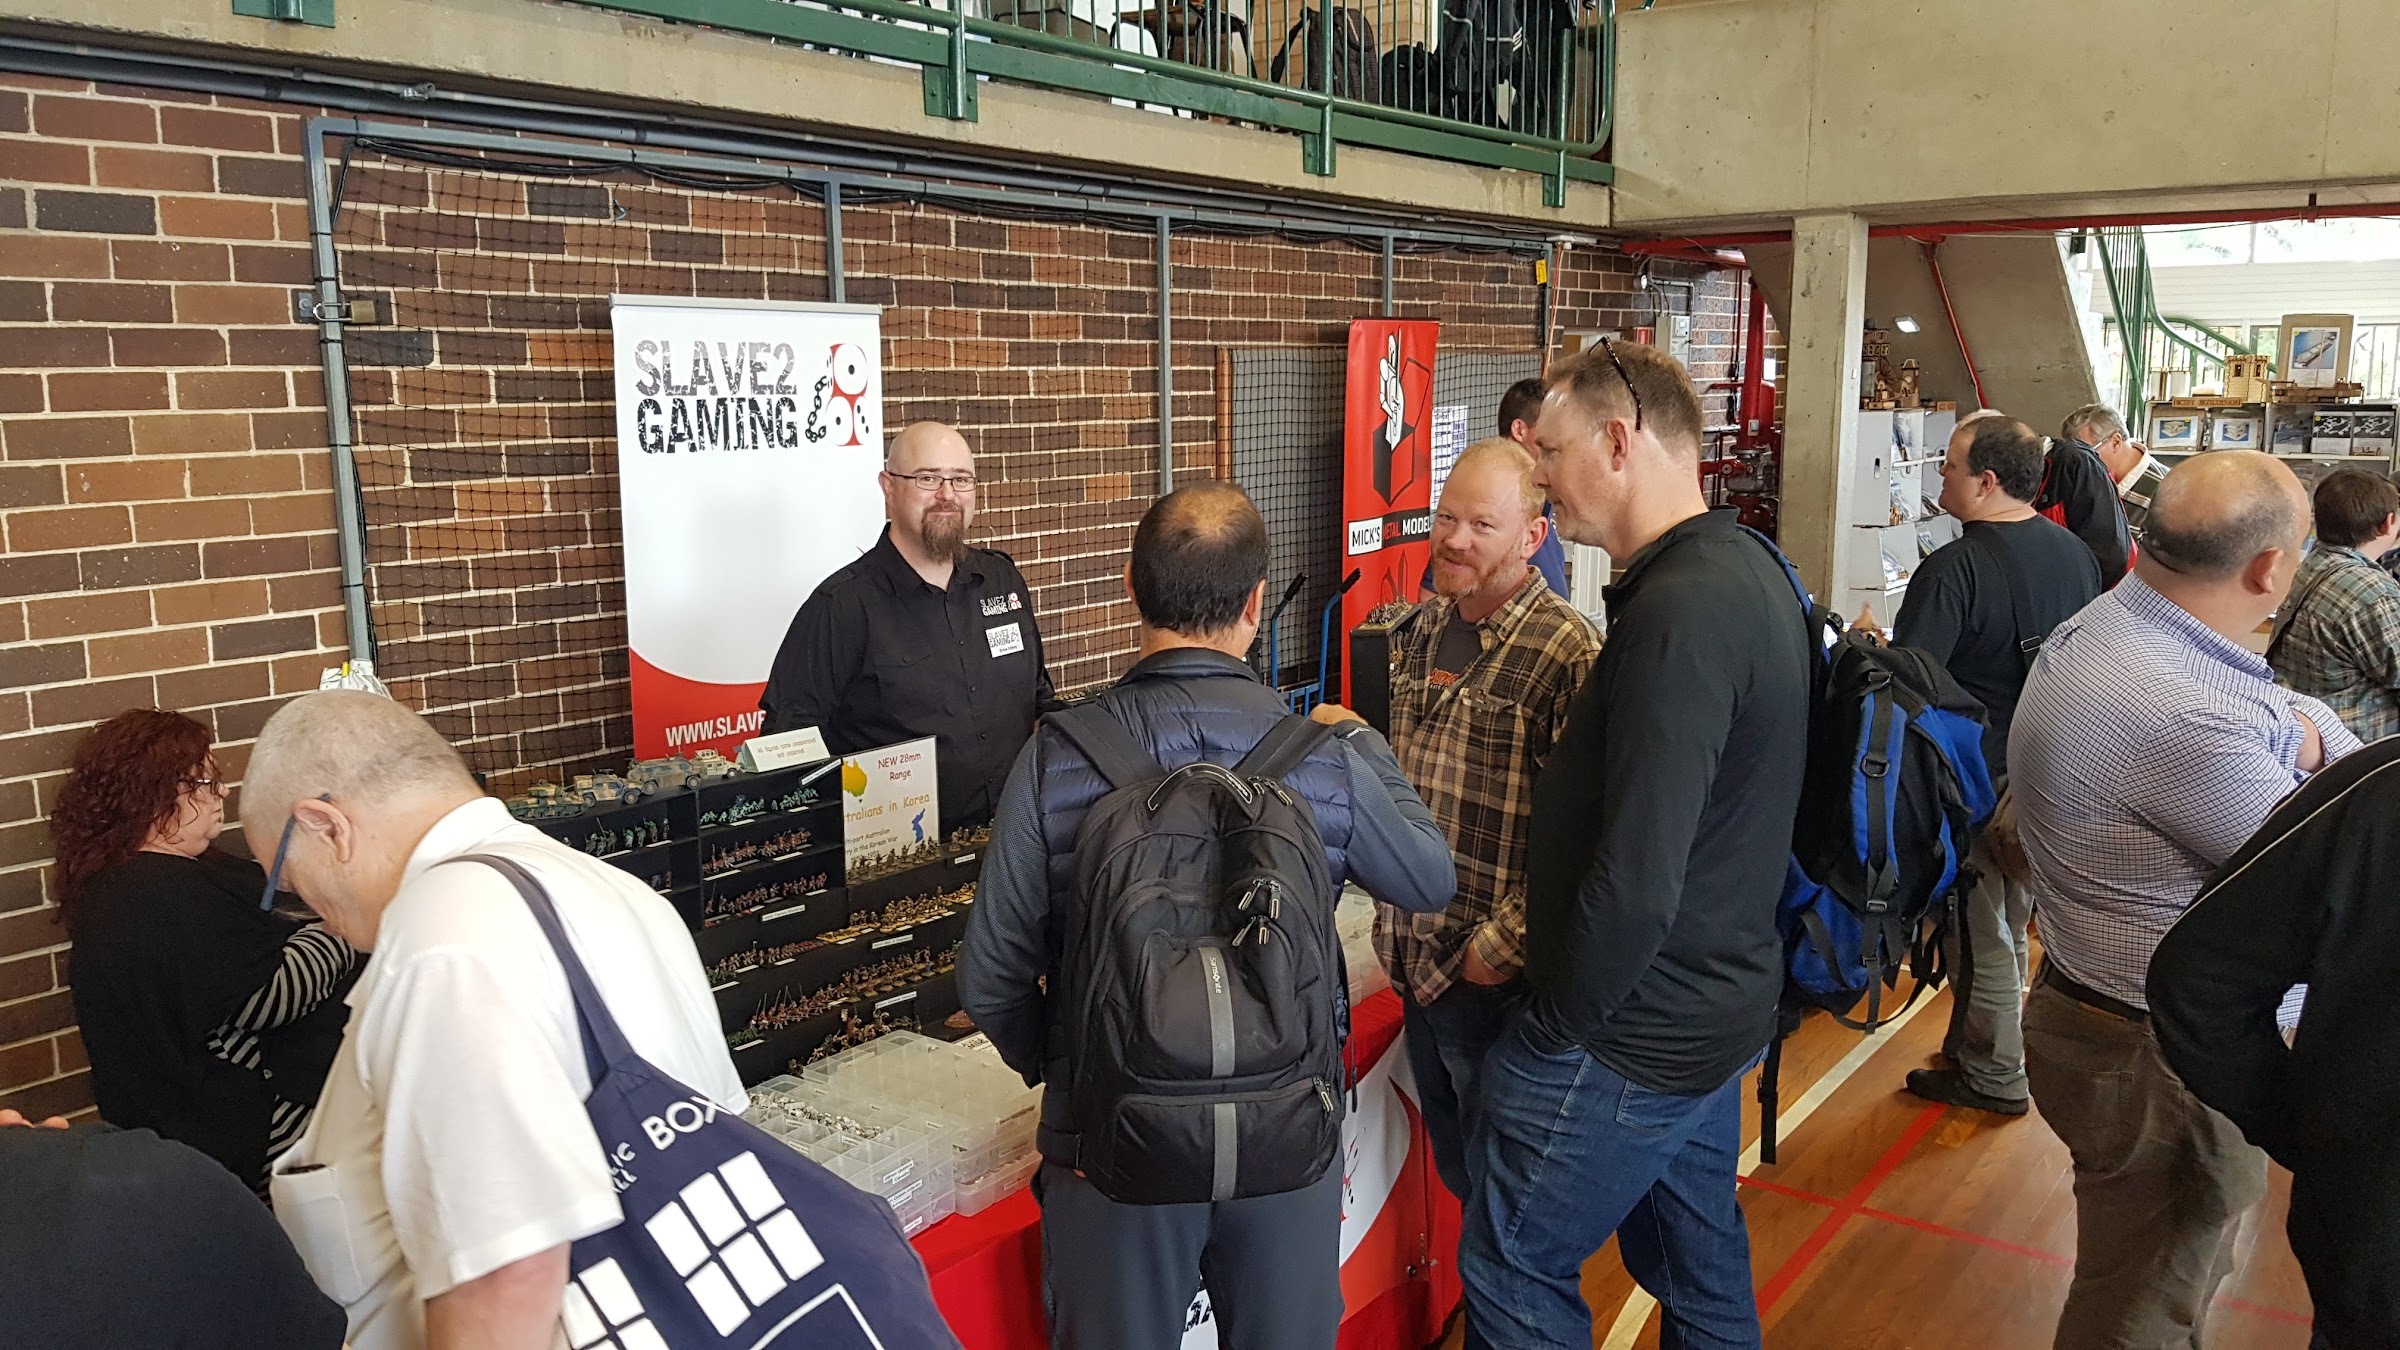 Drew Edney from Slave 2 Gaming talking with customers